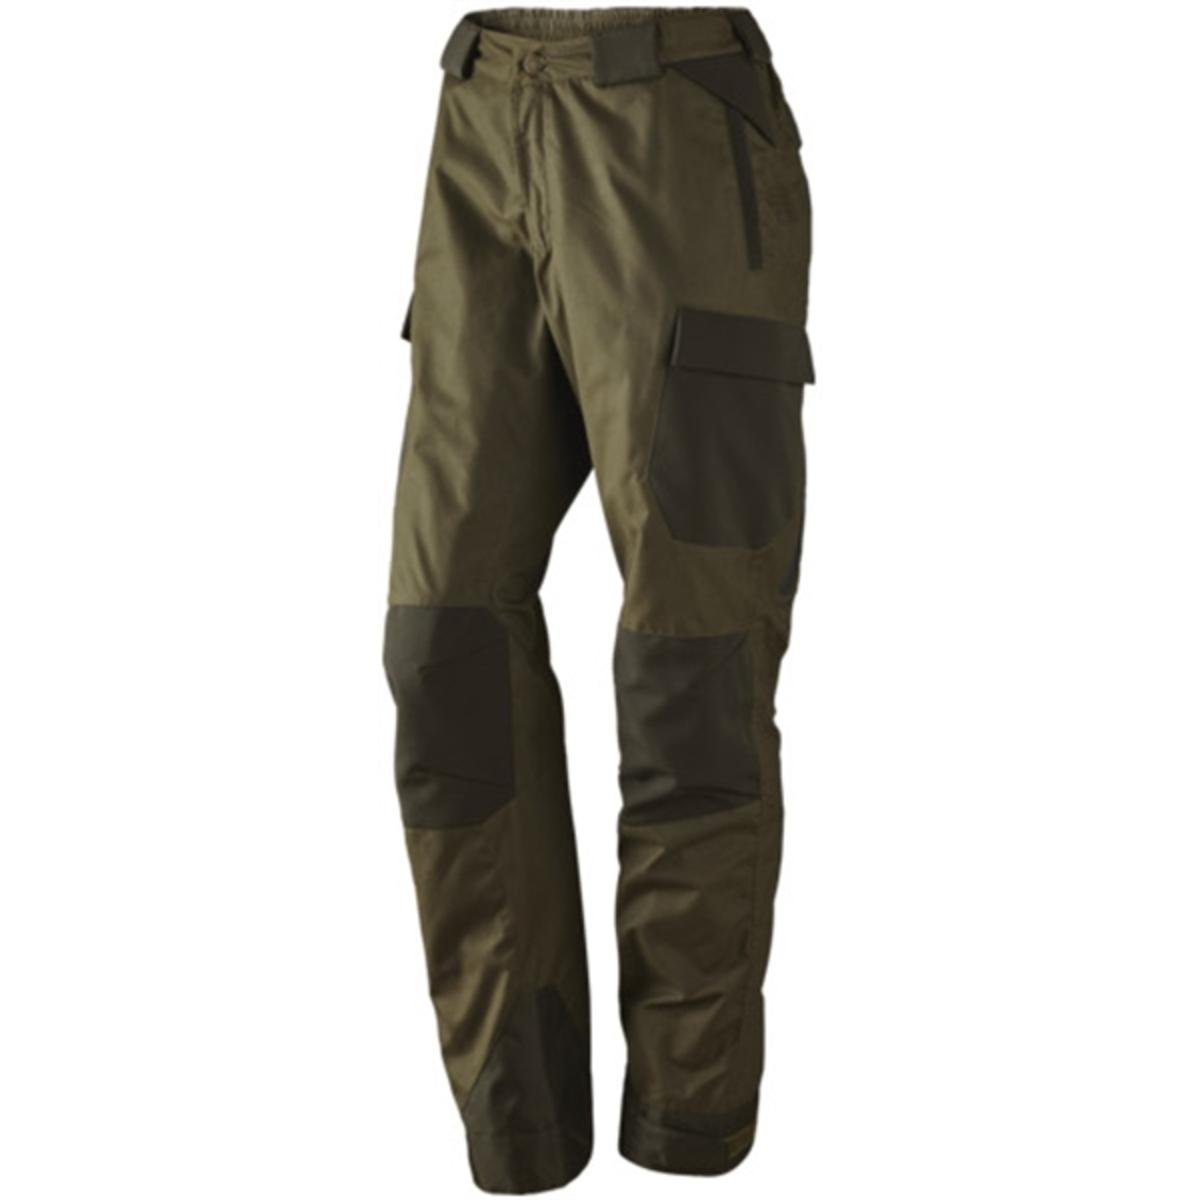 Seeland Damenhose Prevail Frontier Lady Hose Beech Jagdhose